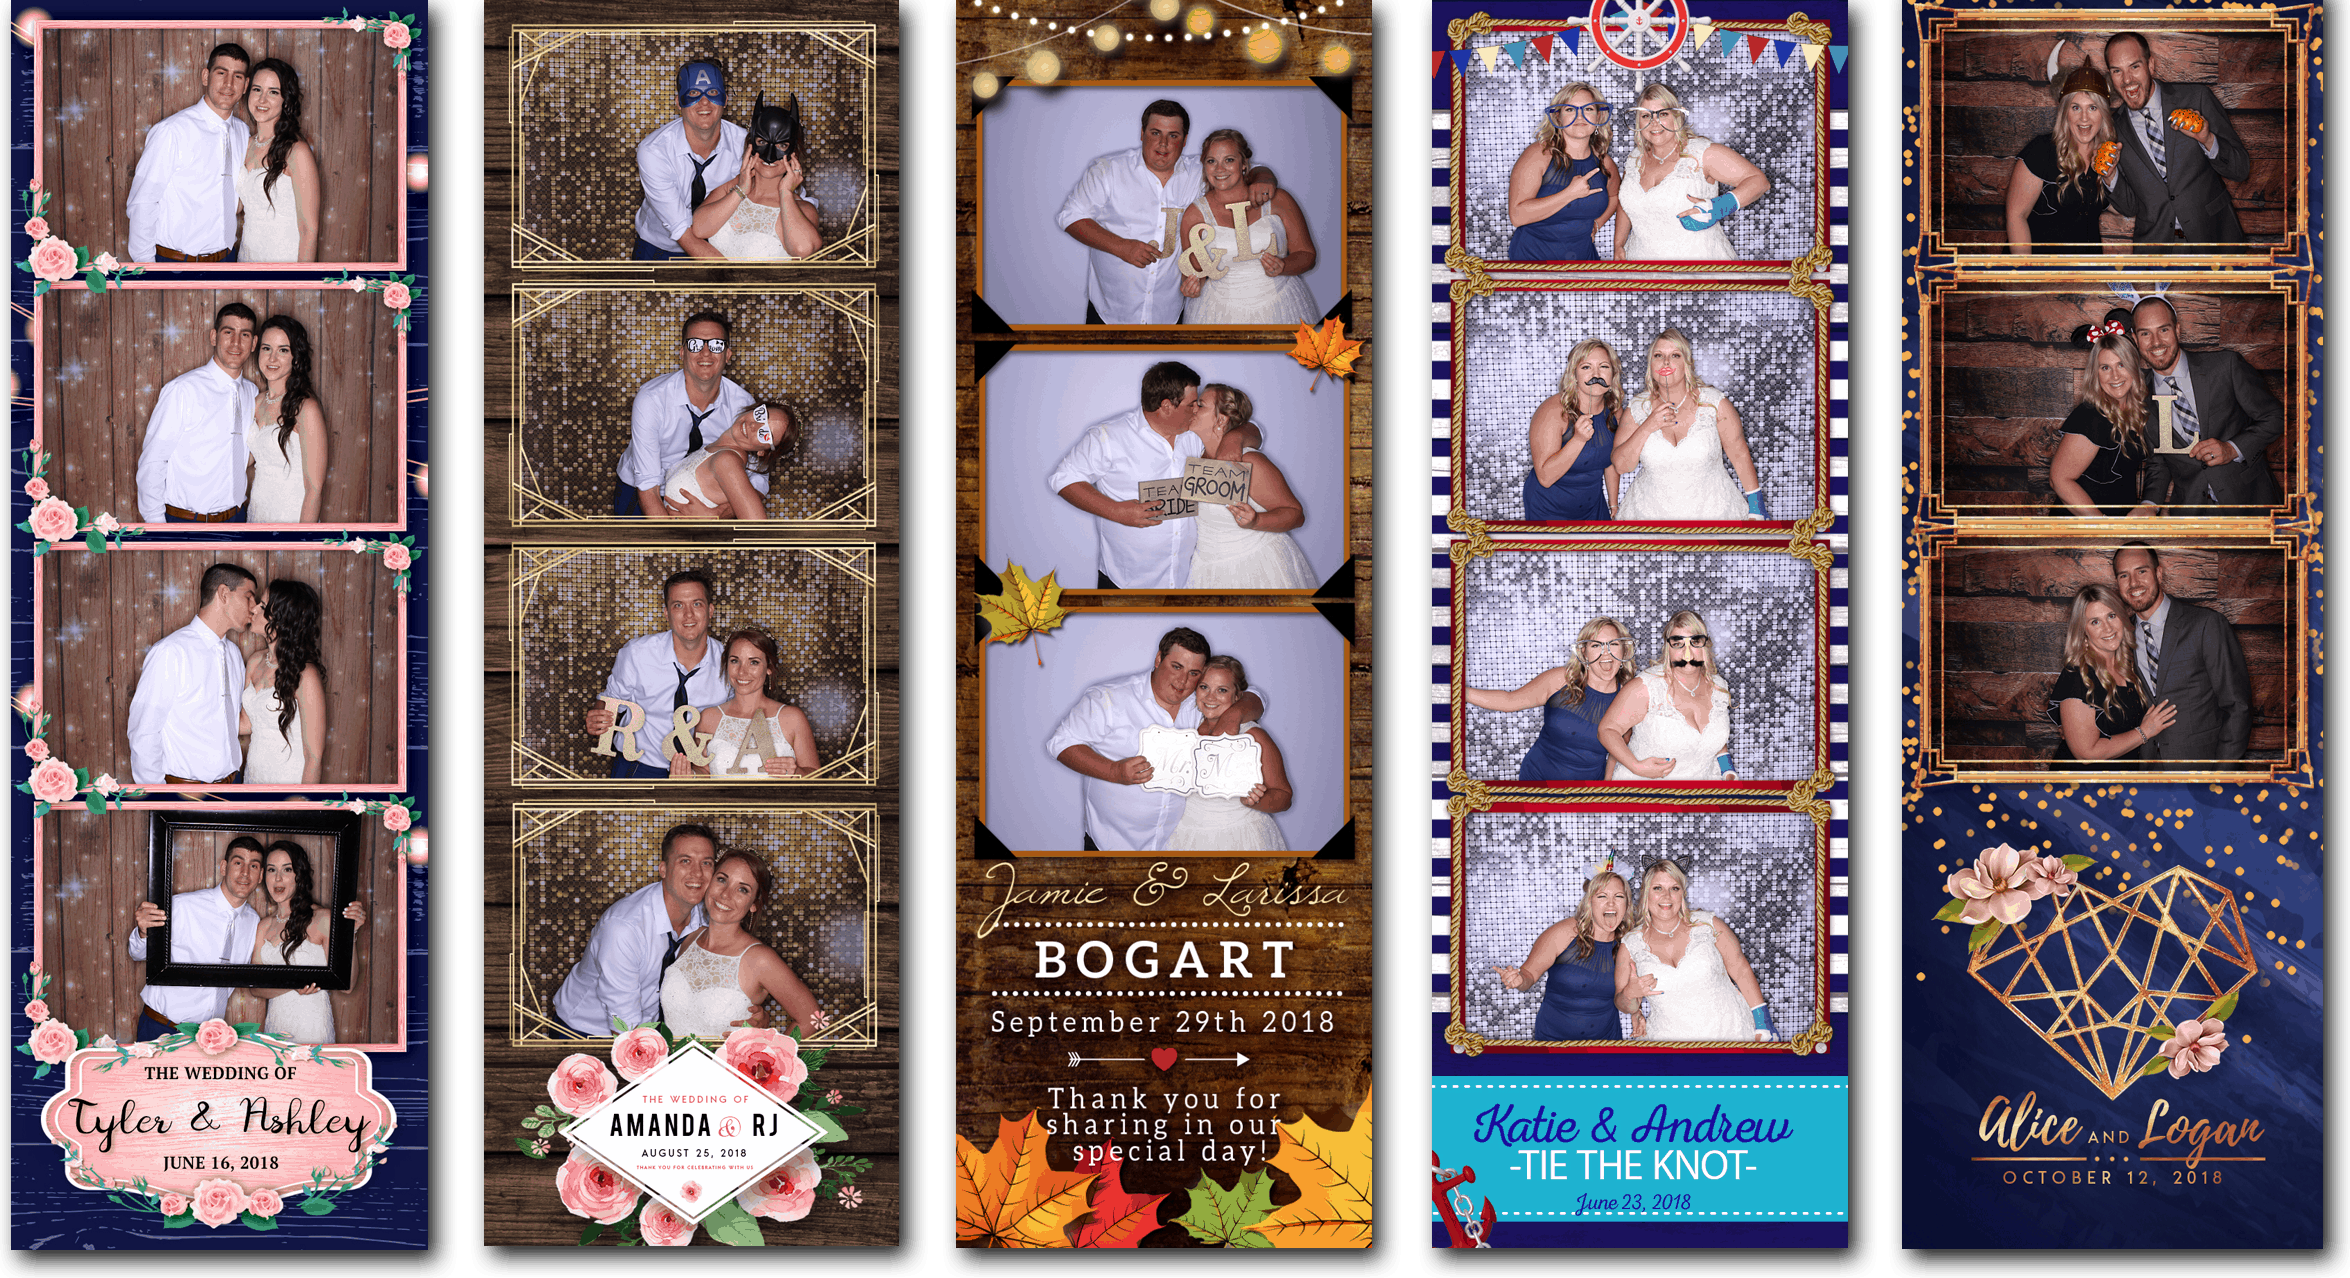 5Wedding Gallery 2x6